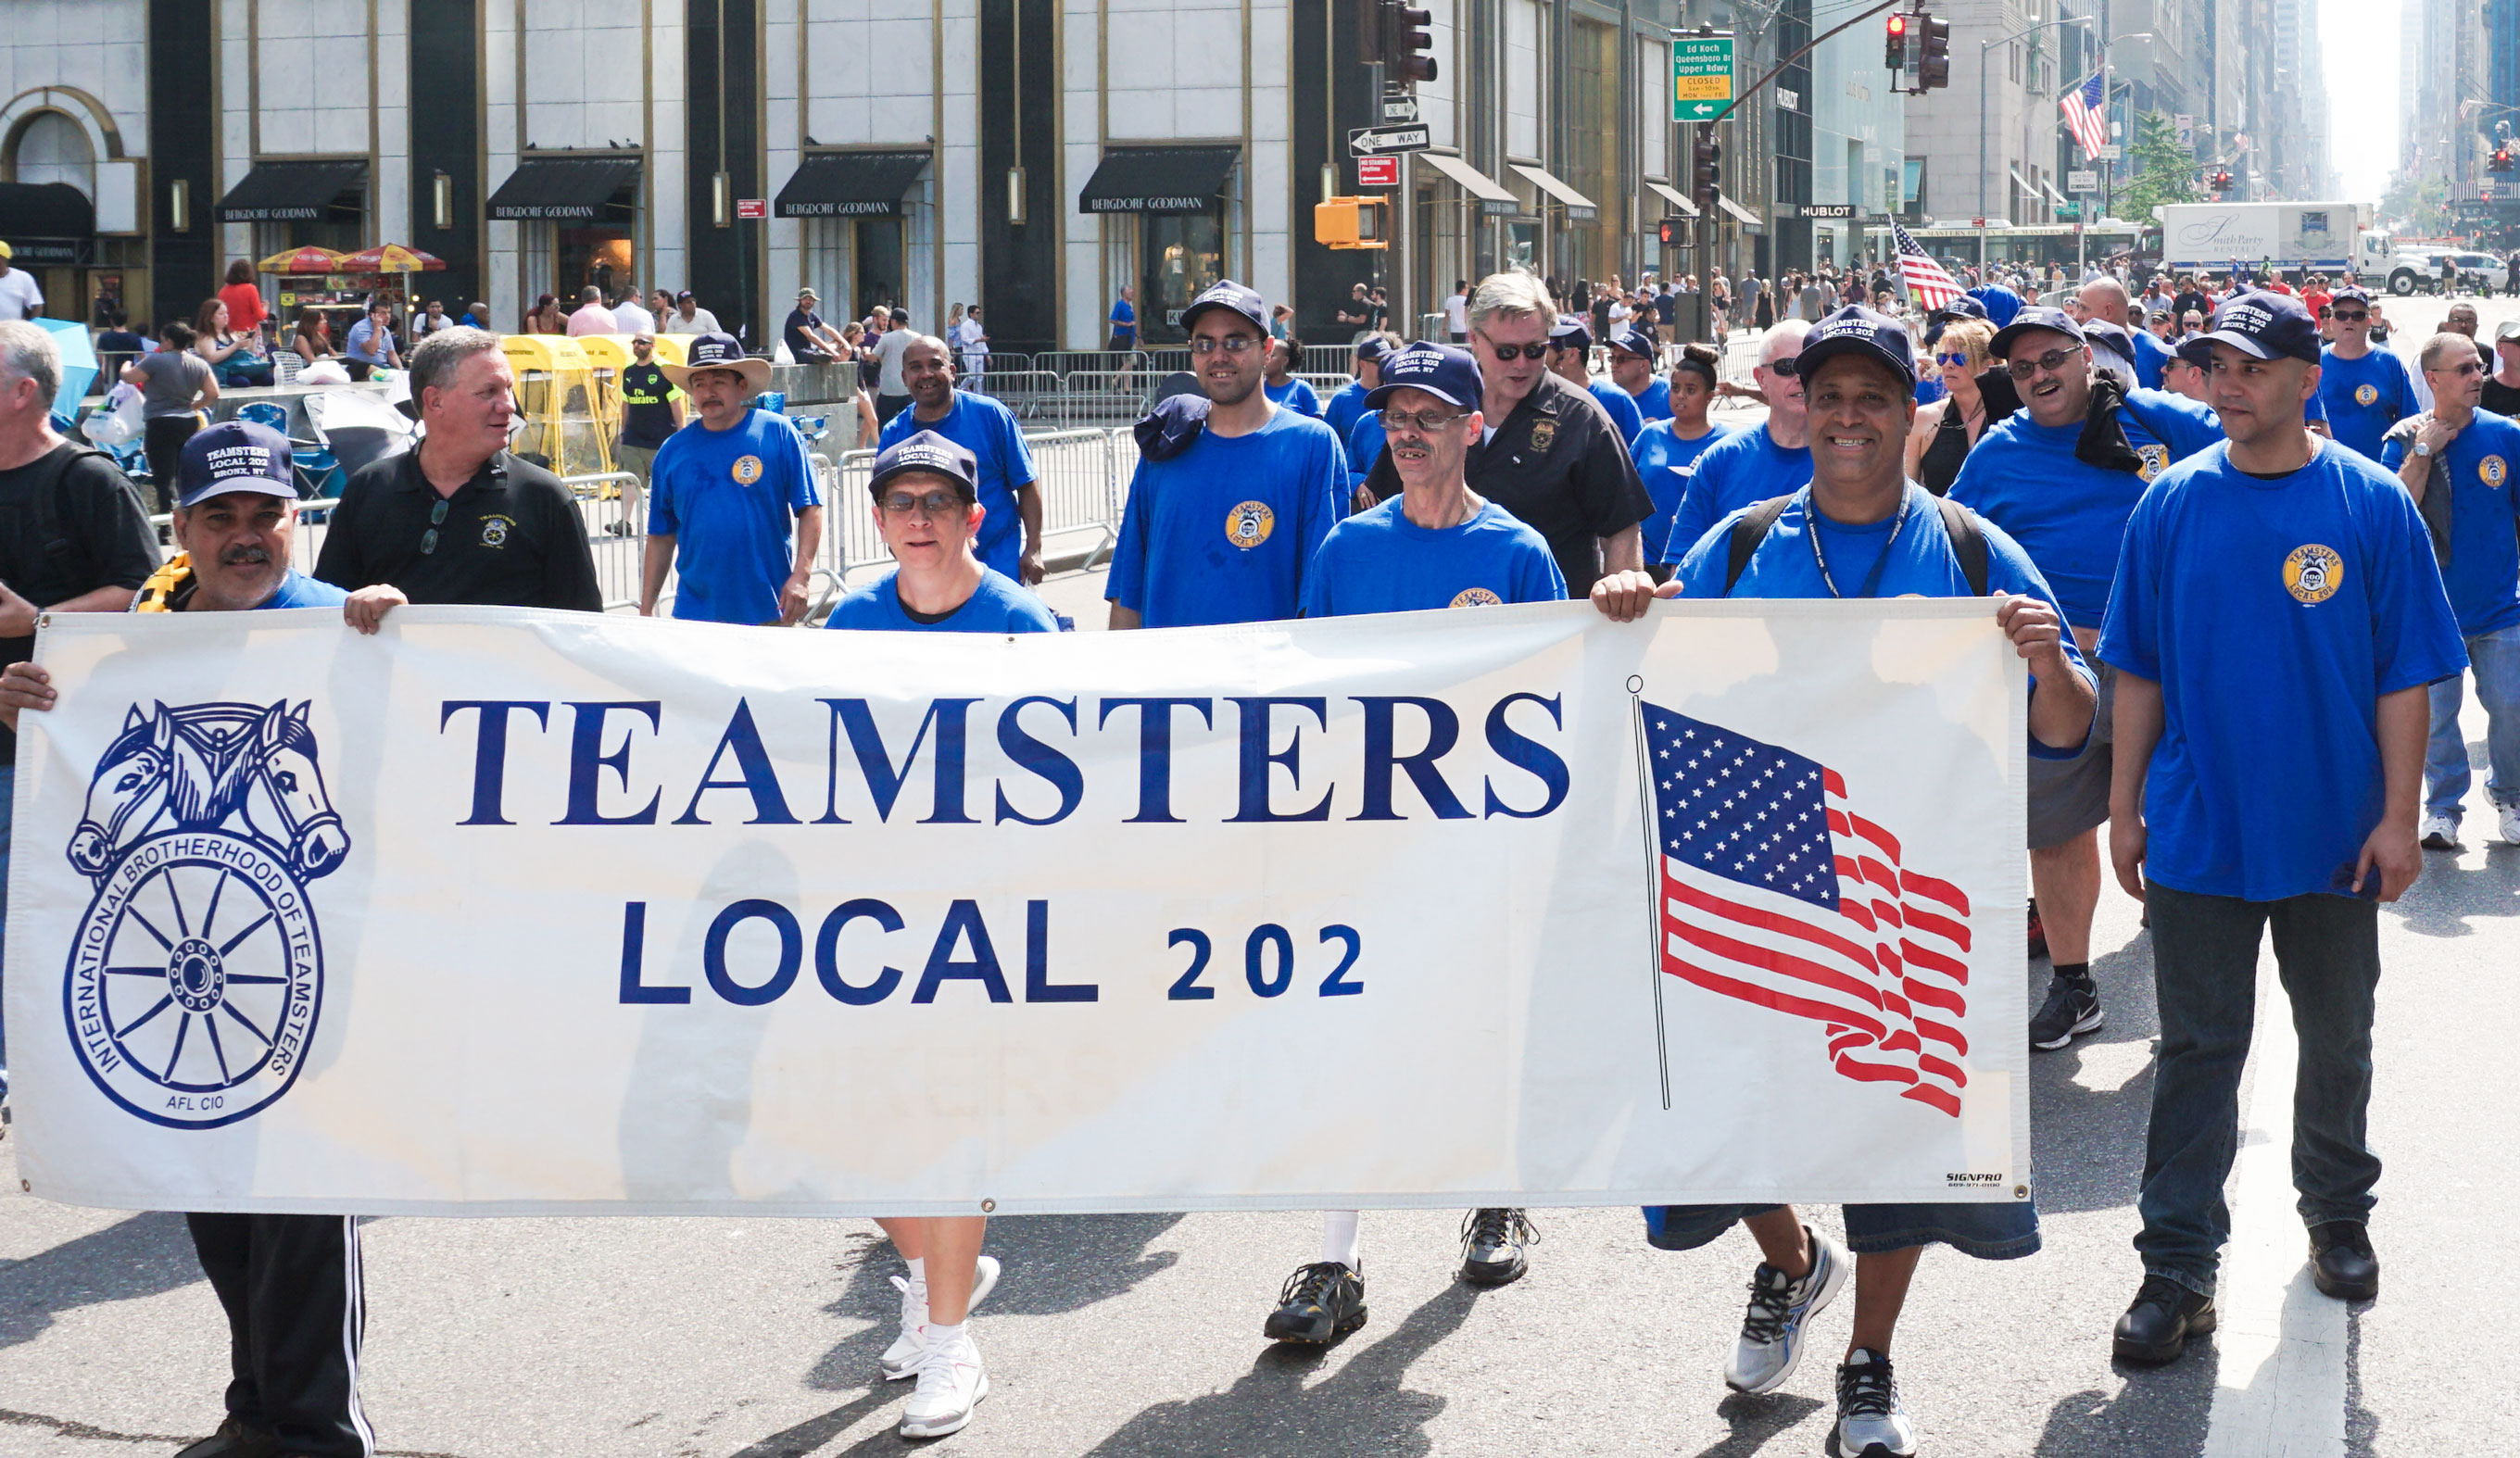 Teamsters Local 202